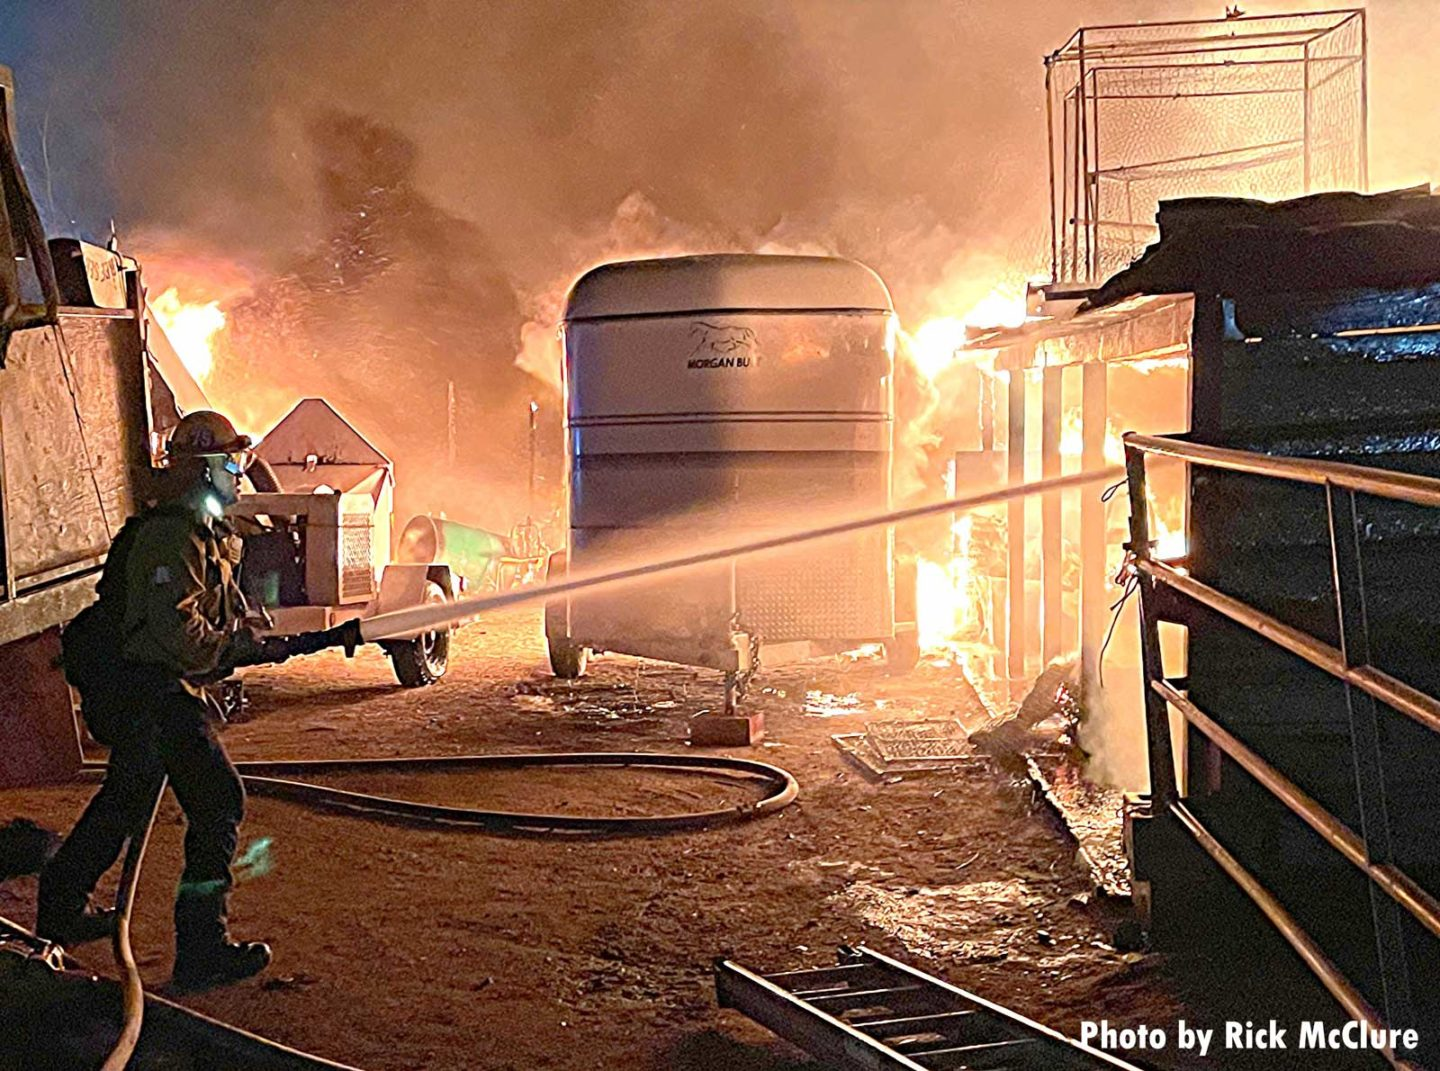 Firefighter trains a hoseline inside a structure